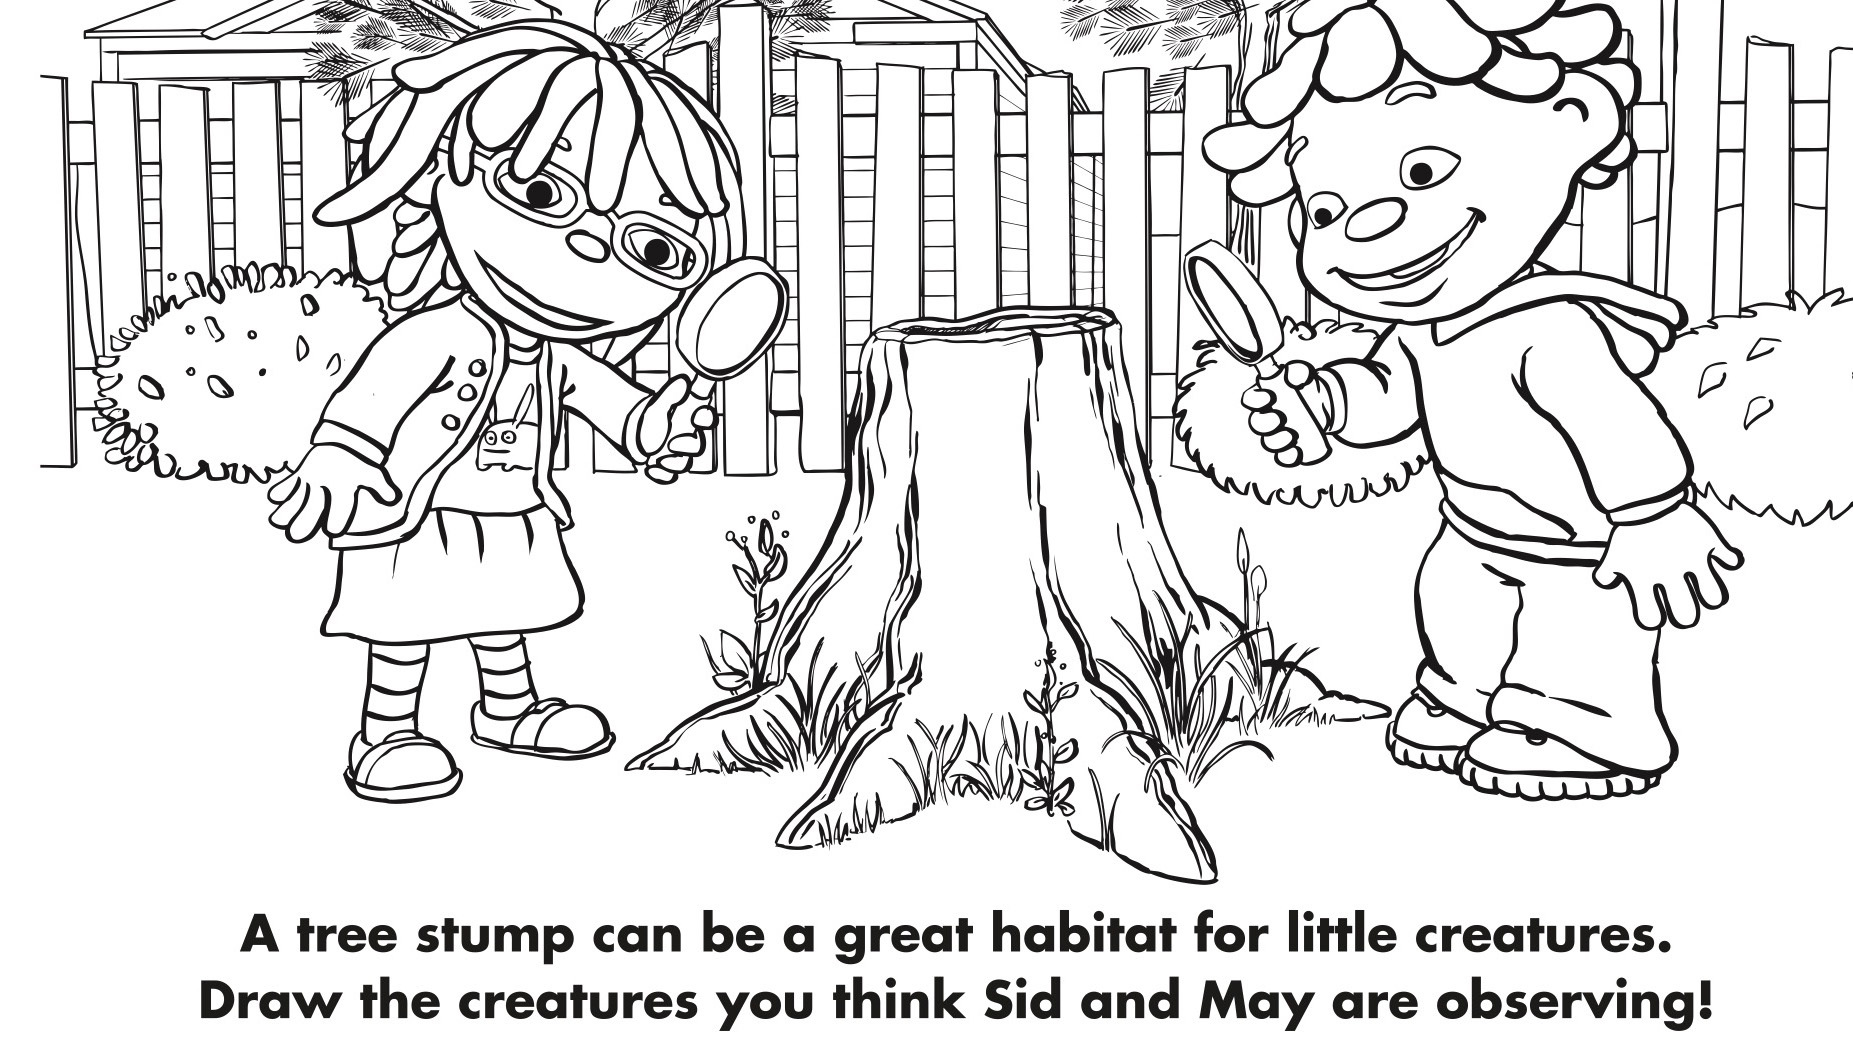 Tree Stump Coloring Page  Kids Coloring Pages  PBS KIDS for Parents